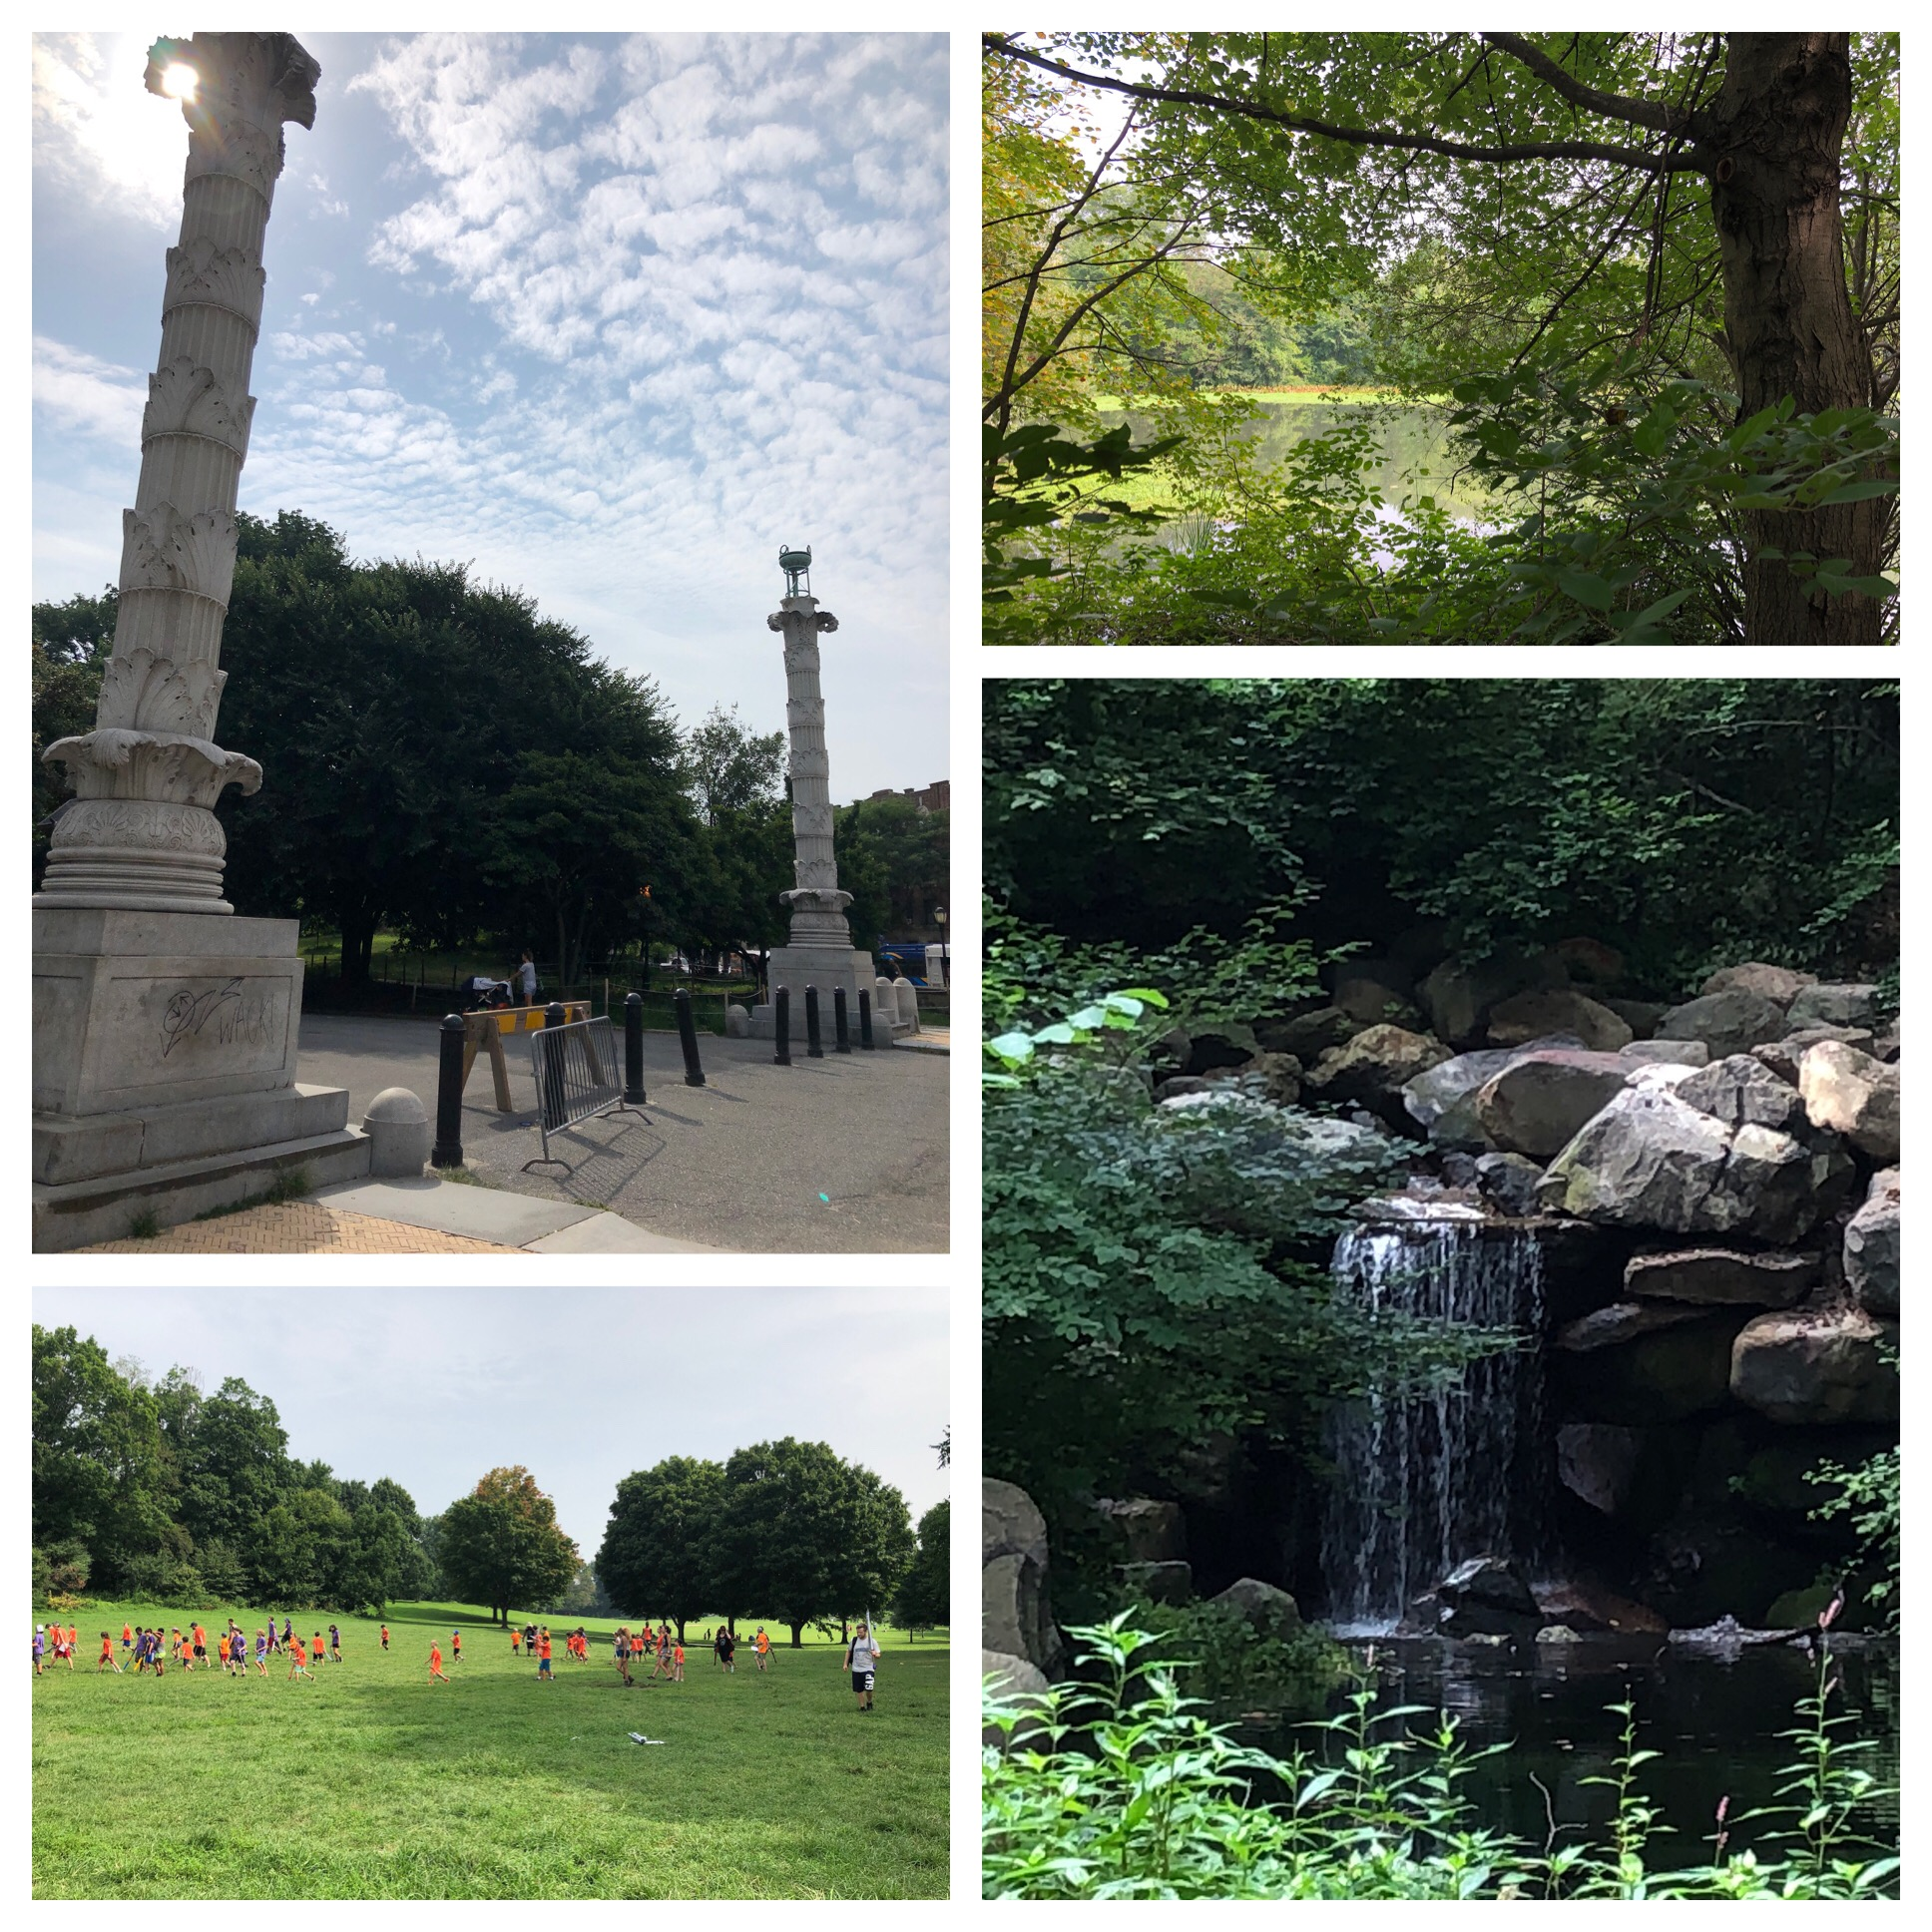 Prospect Park - a lake and waterfalls. Lots of kids playing too.